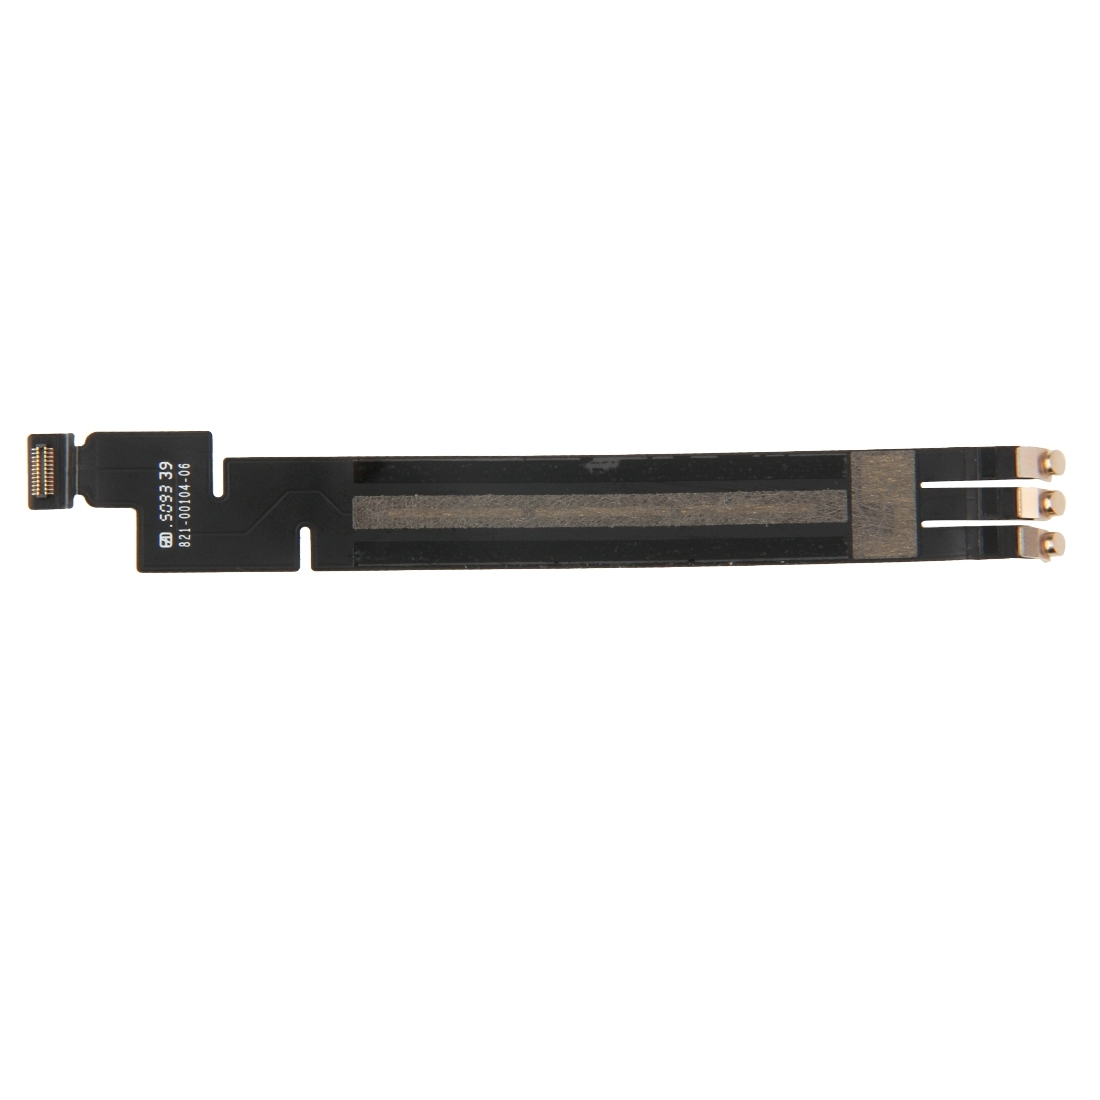 Keyboard Connecting Flex Cable  for iPad Pro 12.9 inch (Gold)